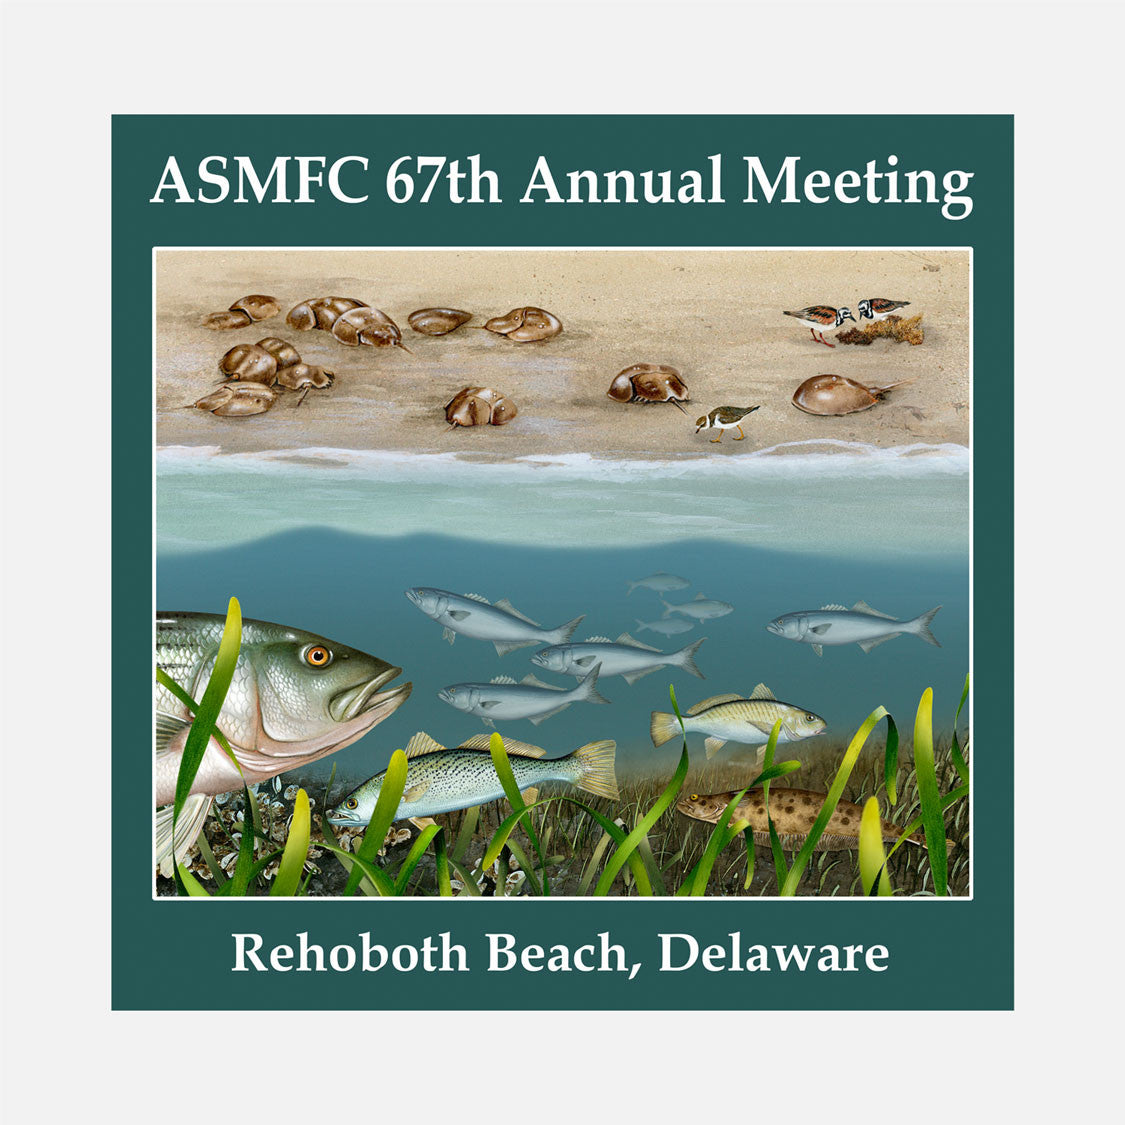 67th annual meeting of the Atlantic States Marine Fisheries Commission, Rehoboth Beach, Delaware, 2008. The logo is a split image of several Delaware marine species.